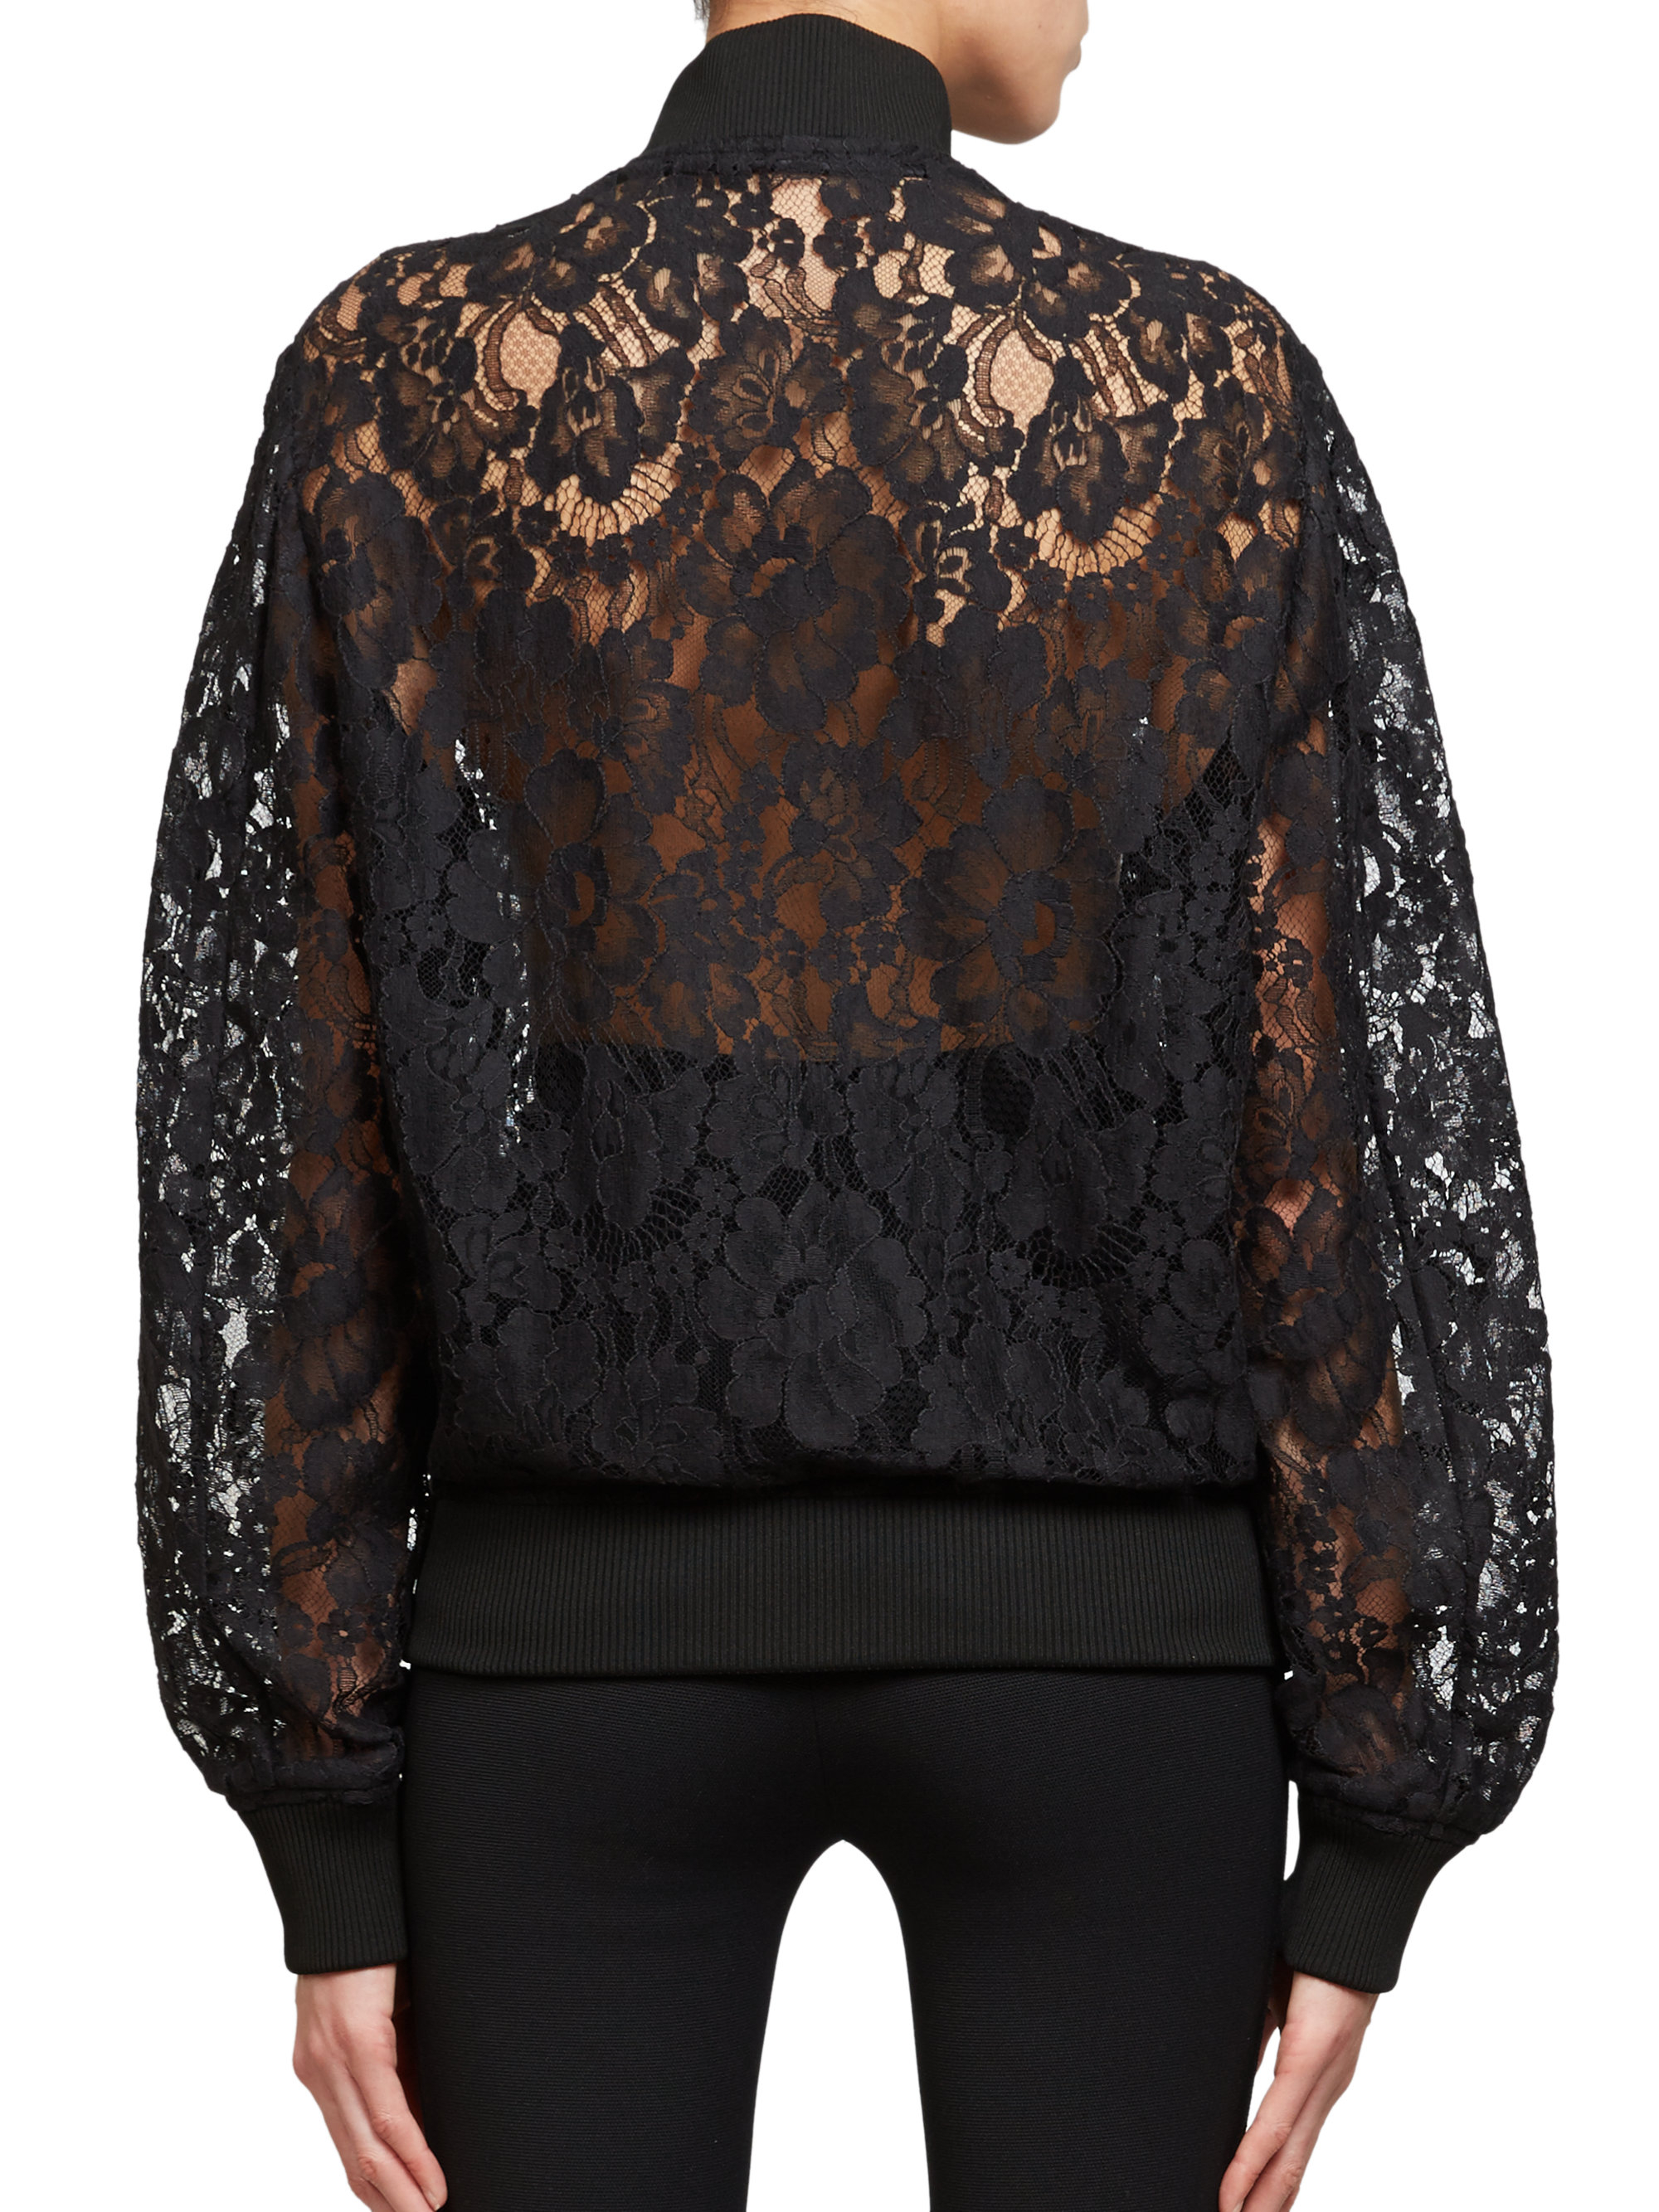 Just as a little black dress accentuates the best features, a lace wedding bolero covers the shoulders while sculpting a woman's upper torso with very little fabric. The three-quarter length sleeves add to the jacket's comfort and great-looking style, along with easy .